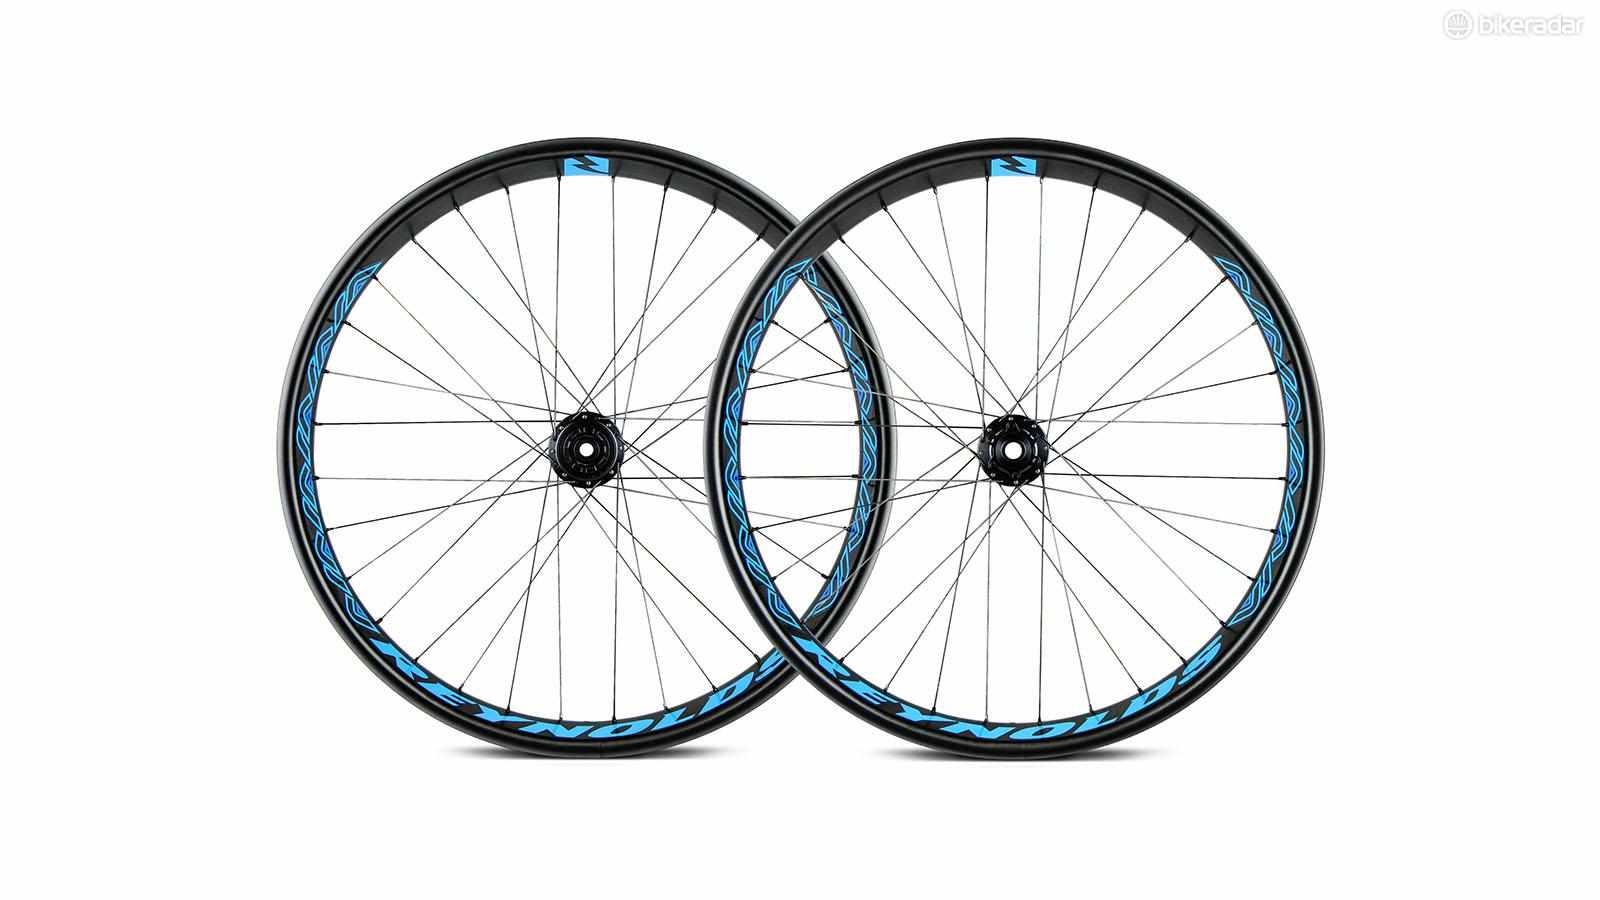 The Reynolds Dean fat bike wheelset is tubeless-ready and has a claimed weight of 2,150g